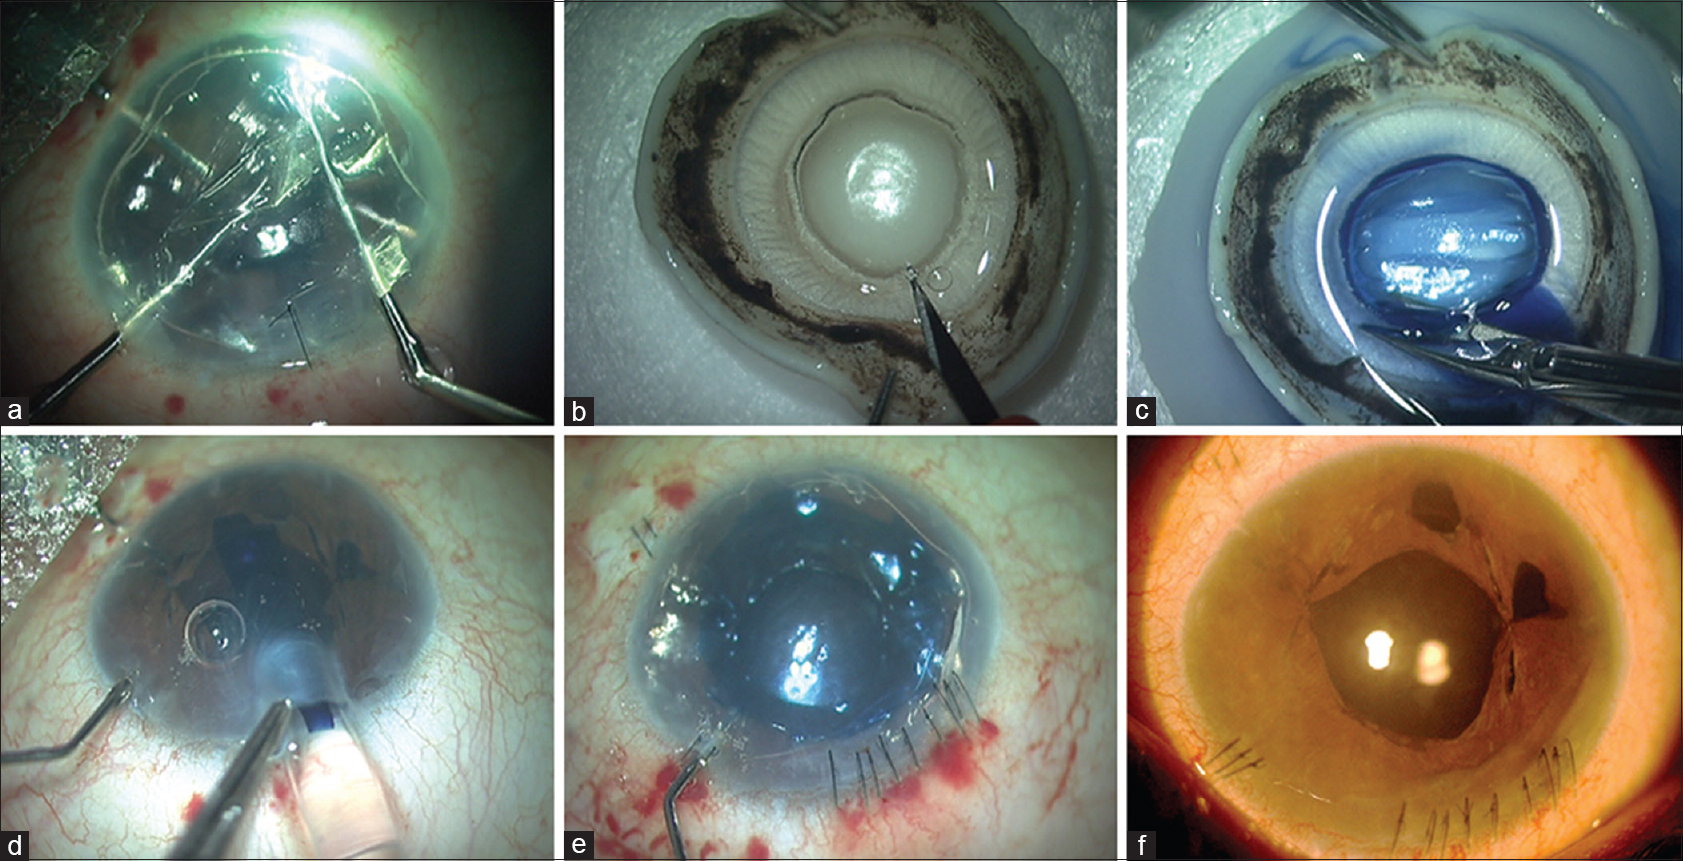 Figure 2: The combined procedure of phacoemulsification with single-pass four-throw with pre-Descemet's endothelial keratoplasty. (a) Descemetorhexis is done. (b) Type 1 bubble is formed. (c) The graft is stained with trypan blue. (d) The graft is injected. (e) The graft is unrolled using air and fluidics. (f) Postoperative image at 3-month follow-up